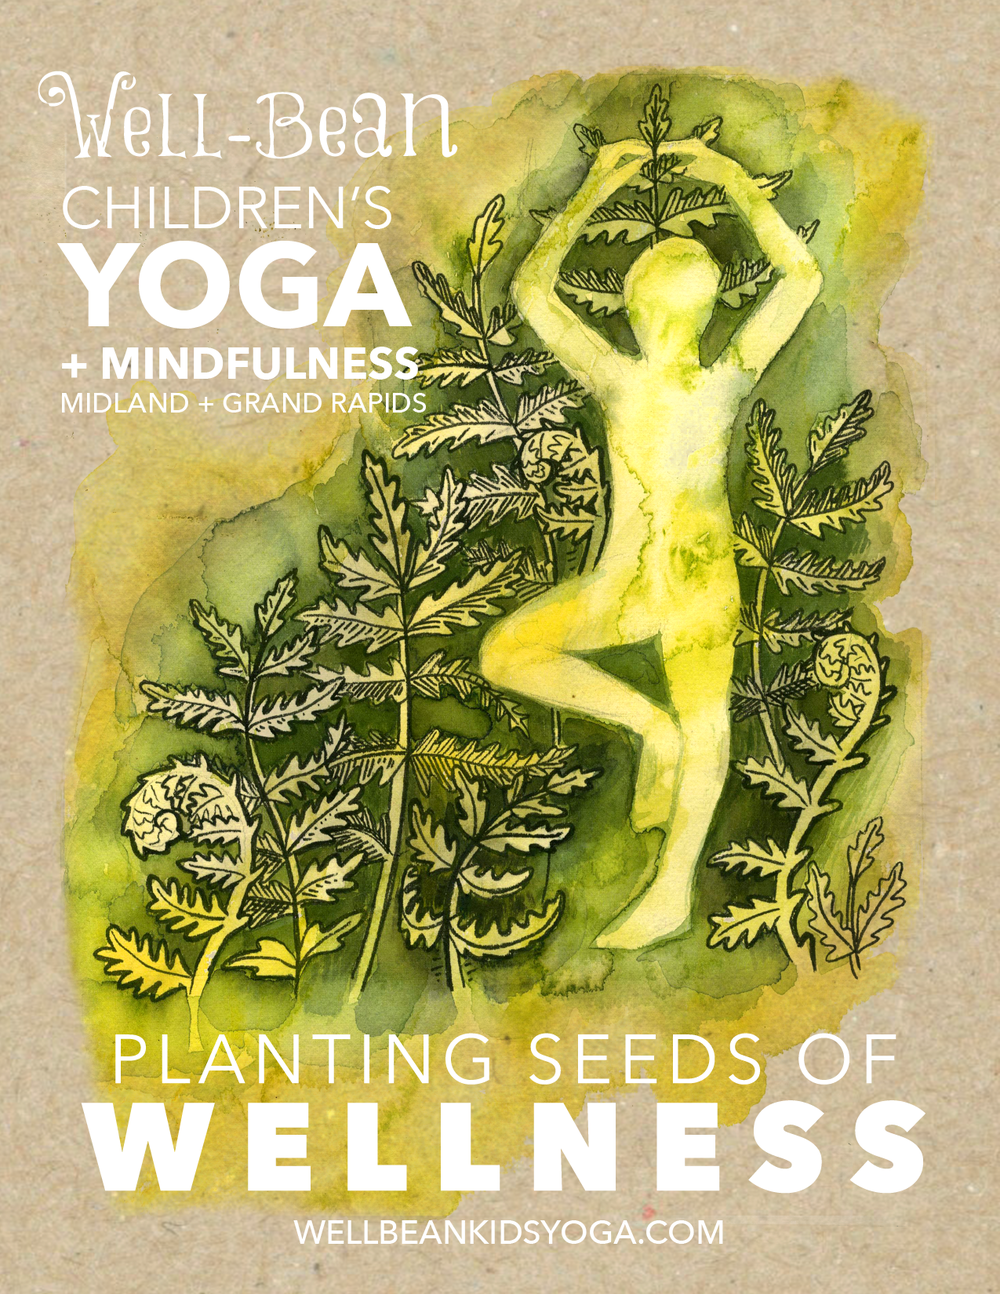 Well-Bean-Childrens-Yoga-01.png